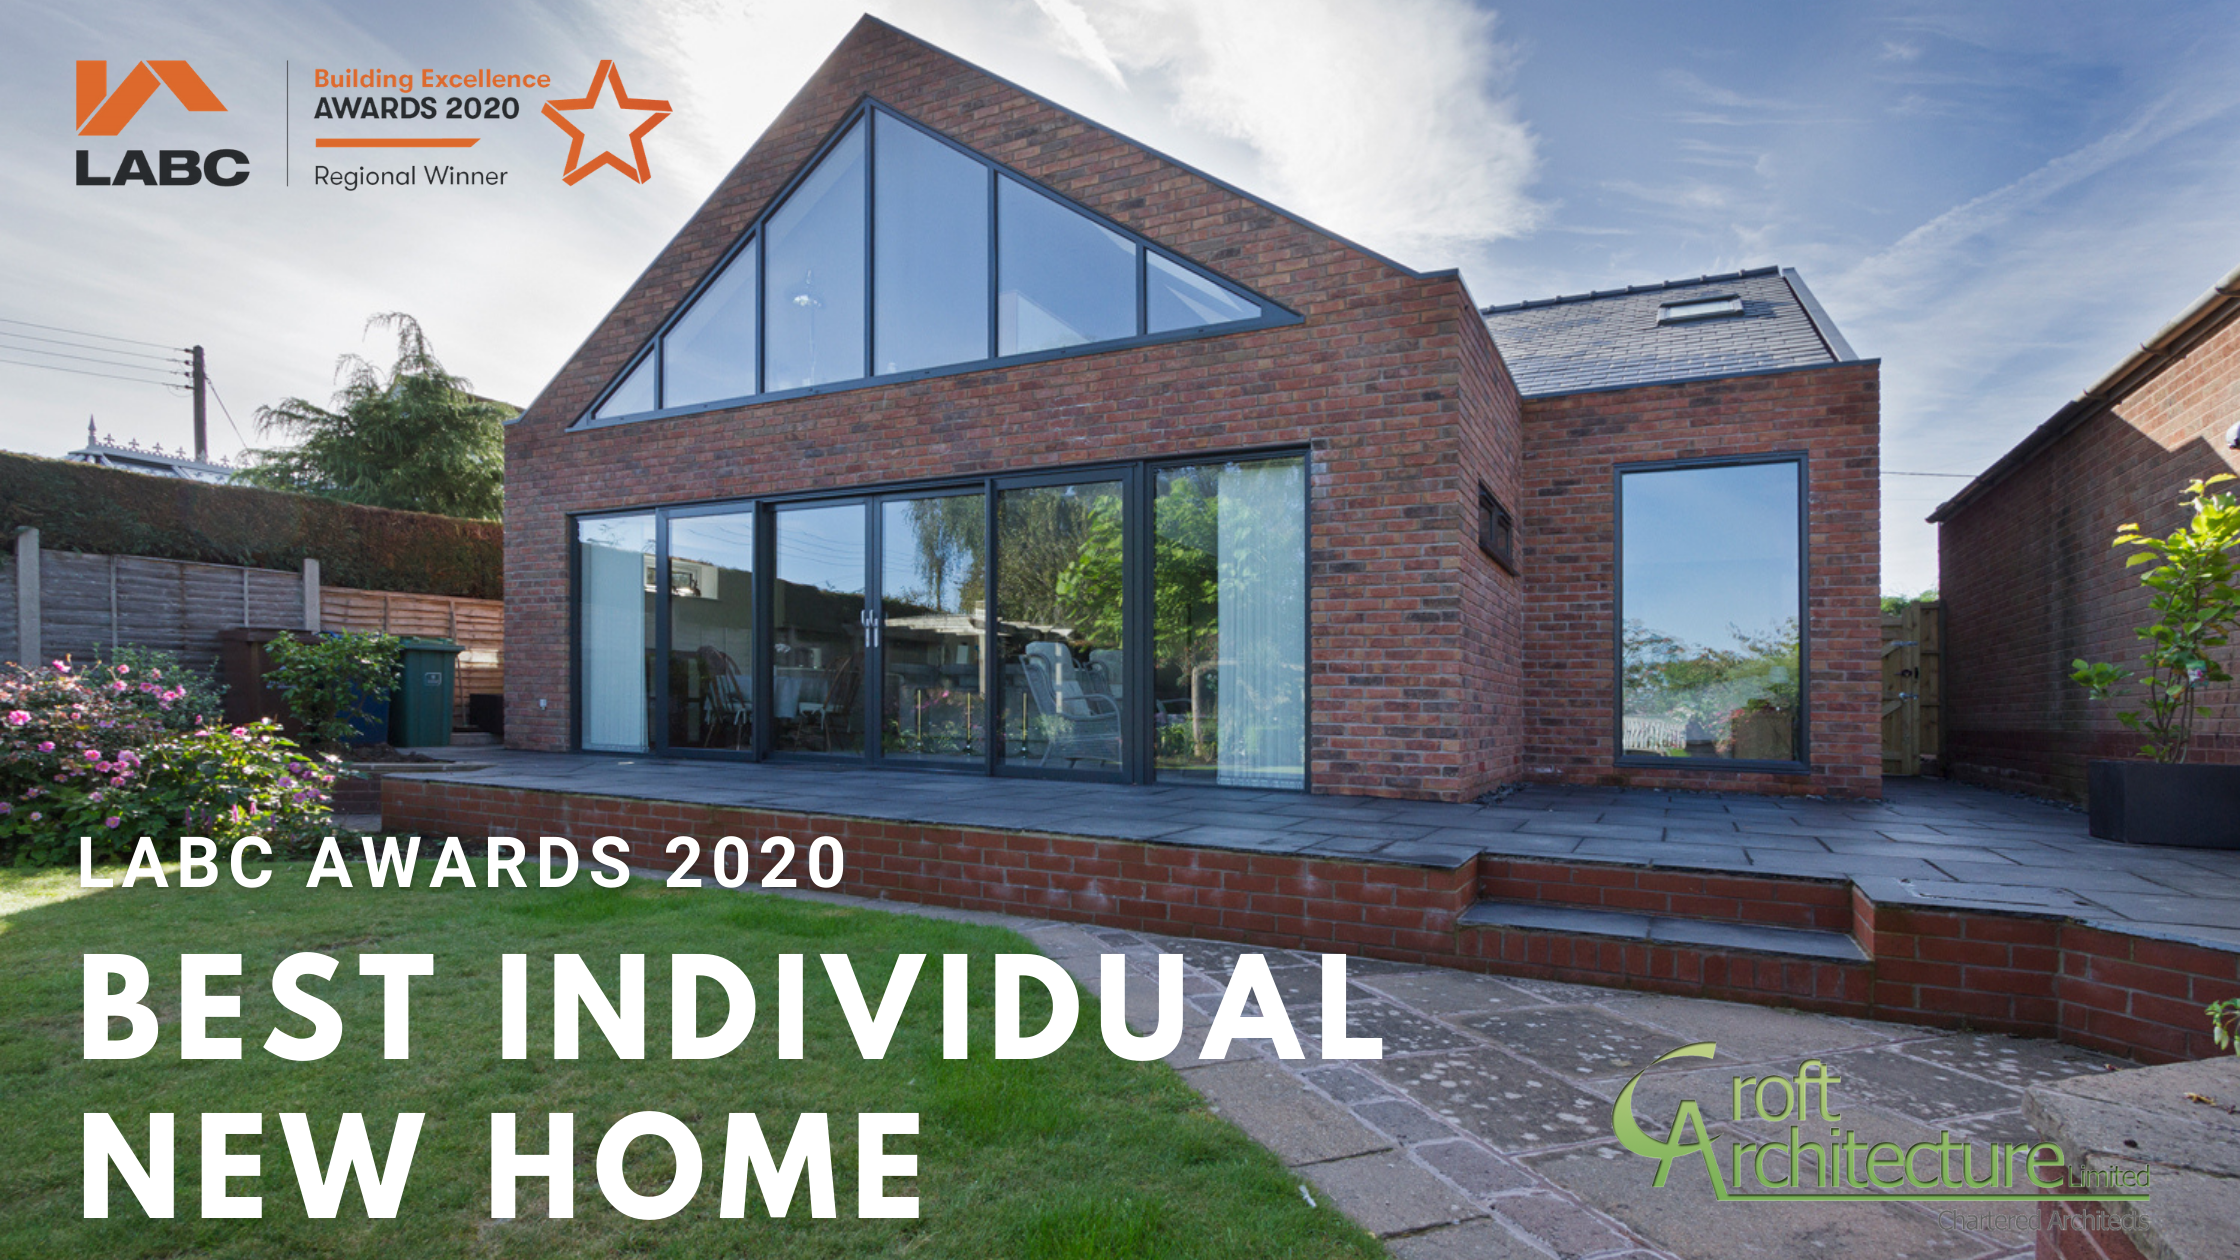 Croft Architecture wins LABC Building Excellence 'Best Individual New Home' Award